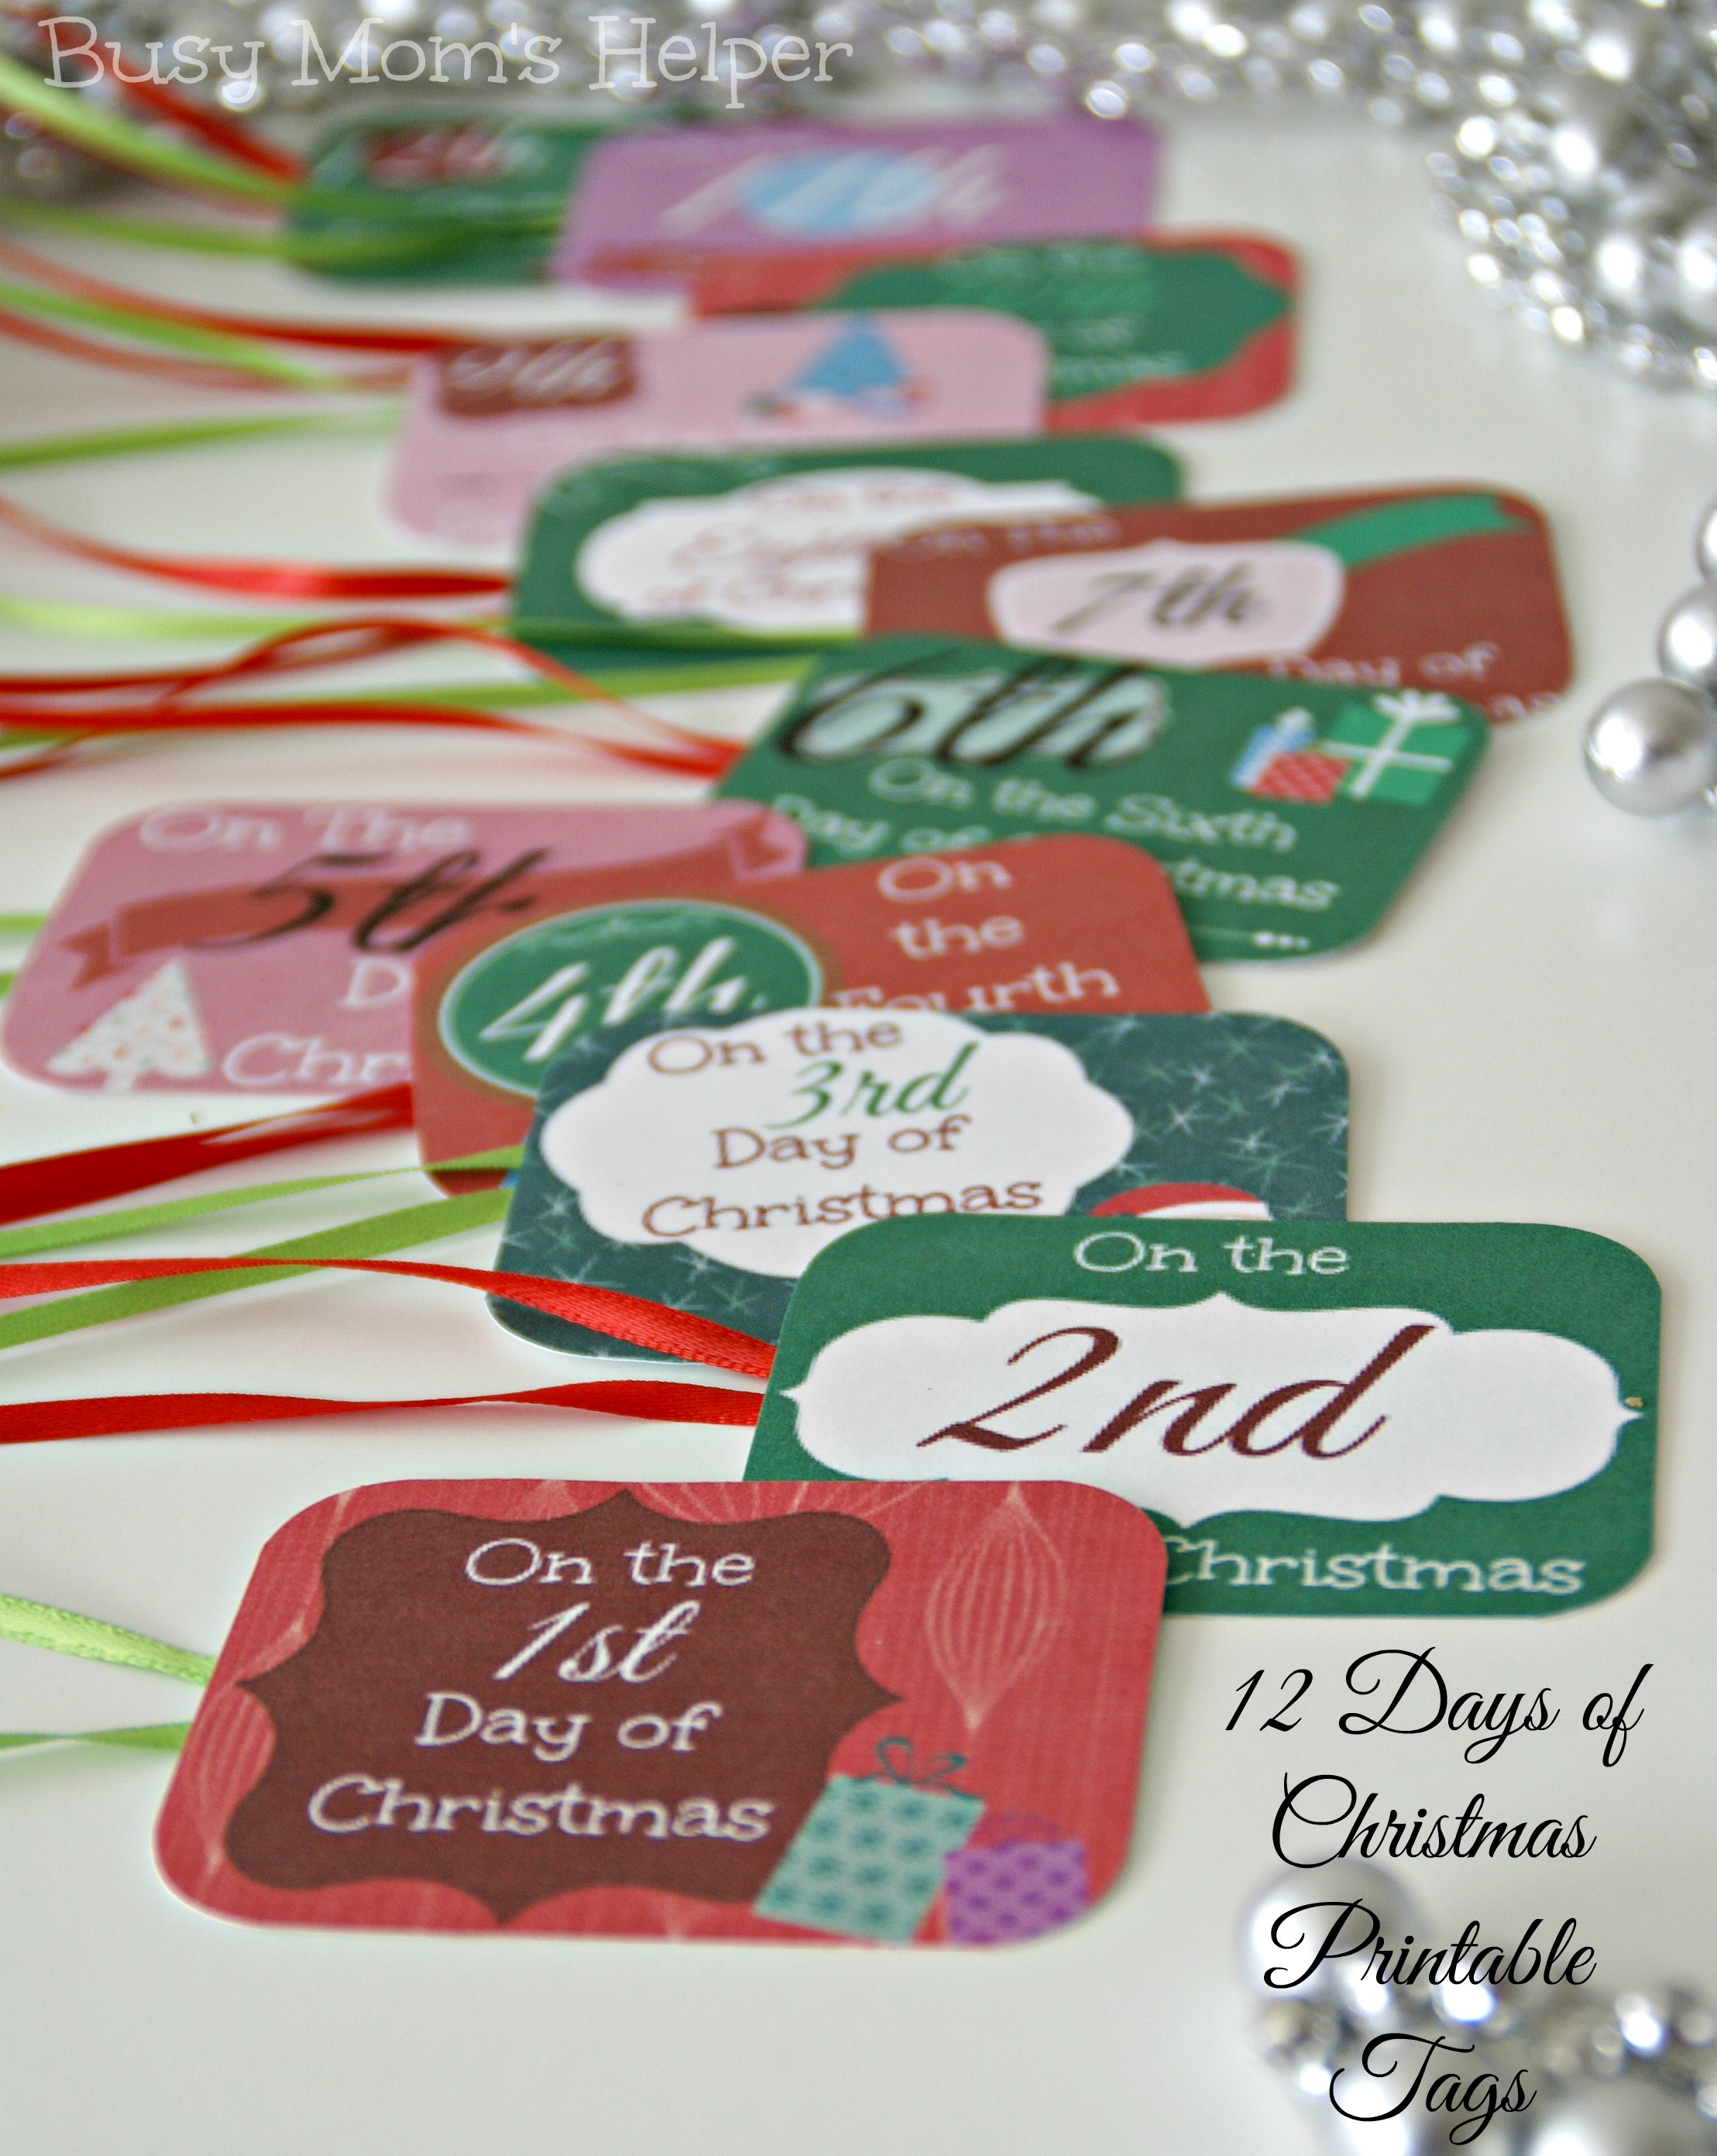 image regarding 12 Days of Christmas Printable identify 12 Times of Xmas Printable Tags - Fast paced Mothers Helper